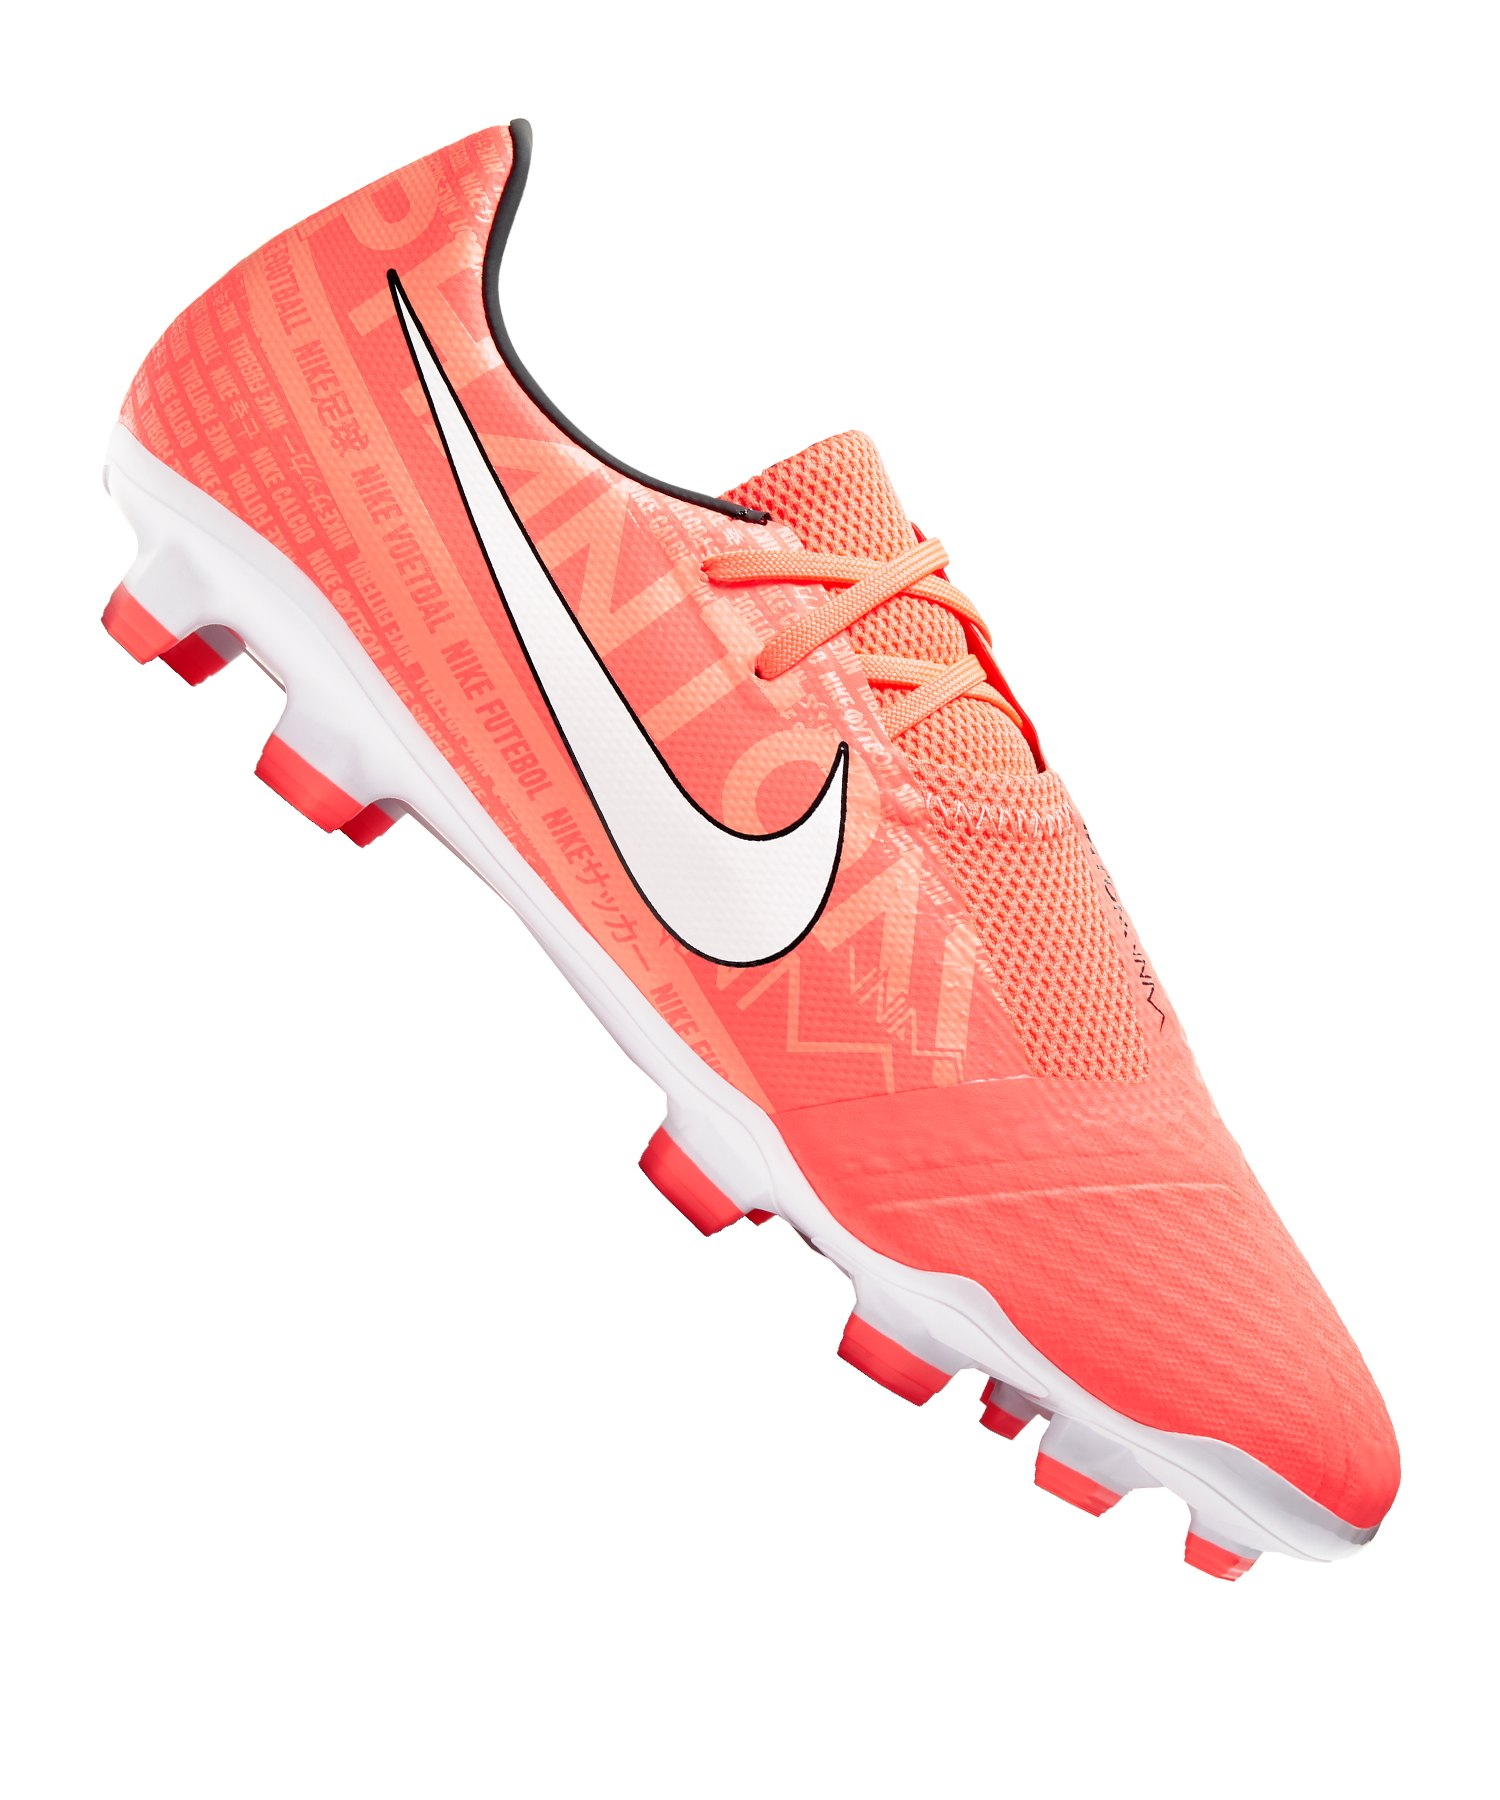 Nike Phantom Venom Academy FG Orange F810 - orange